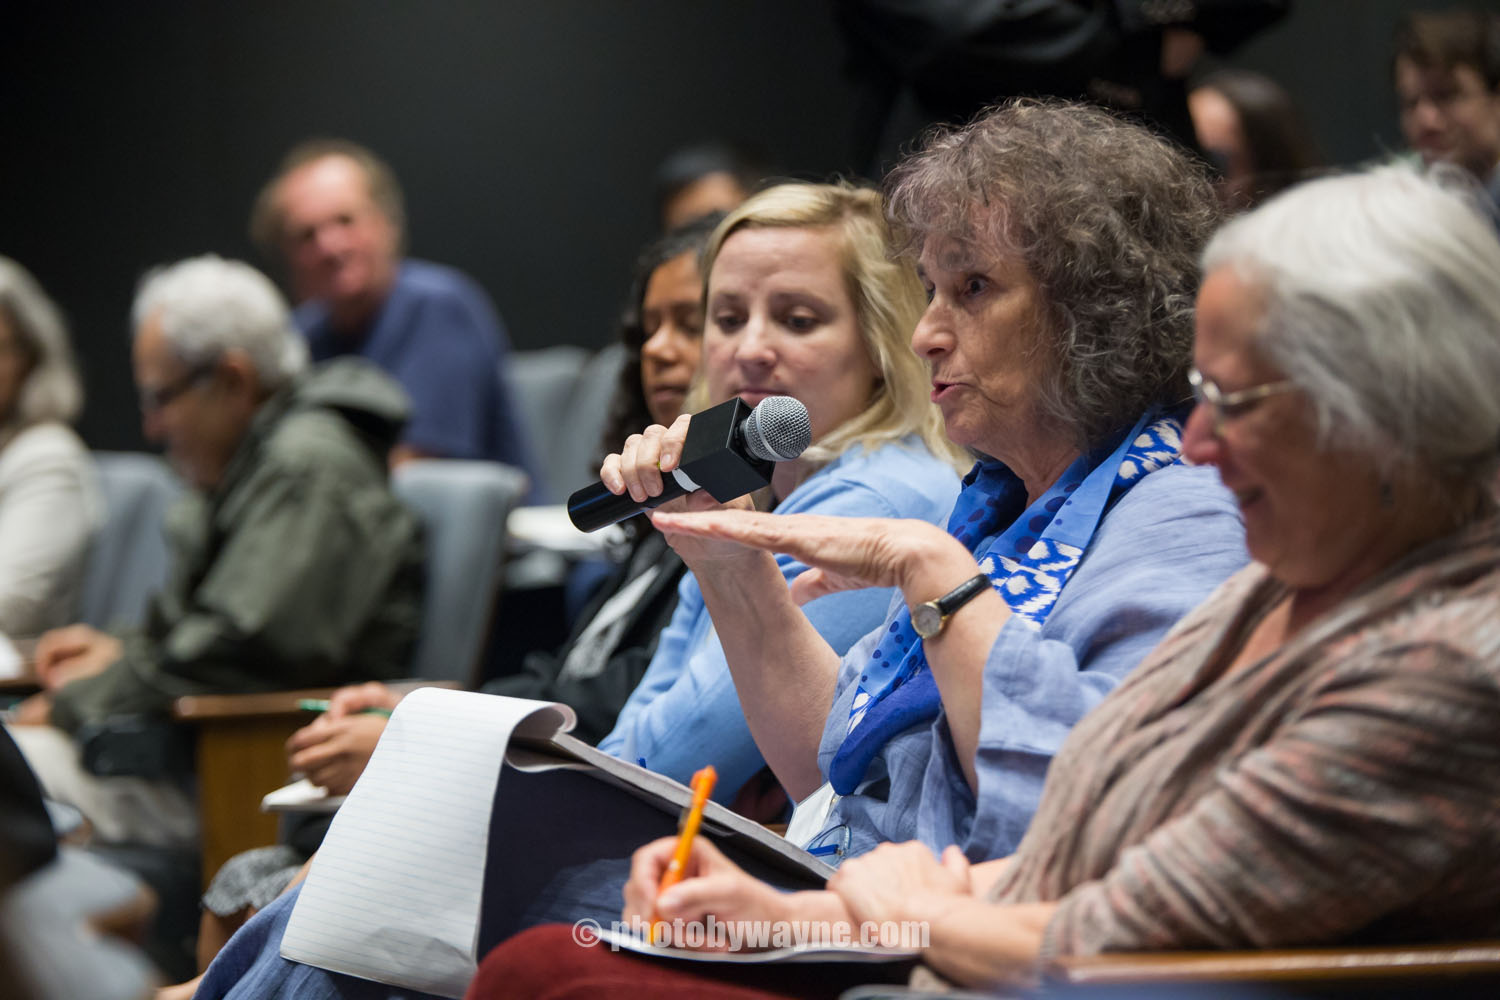 13-basic-income-guarantee-conference-audience-asking-question.jpg